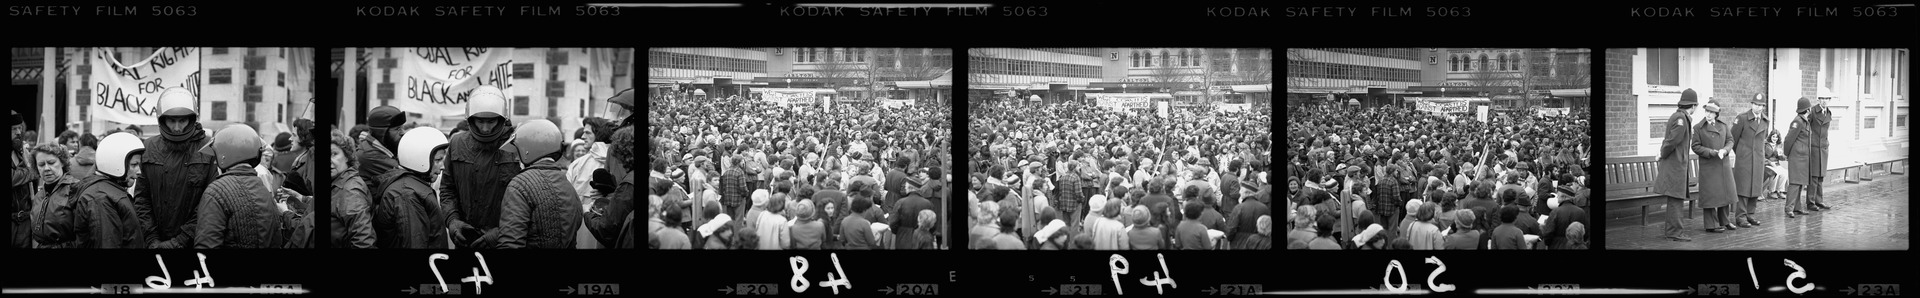 Negative strip with Crowds of Springbok rugby tour protesters